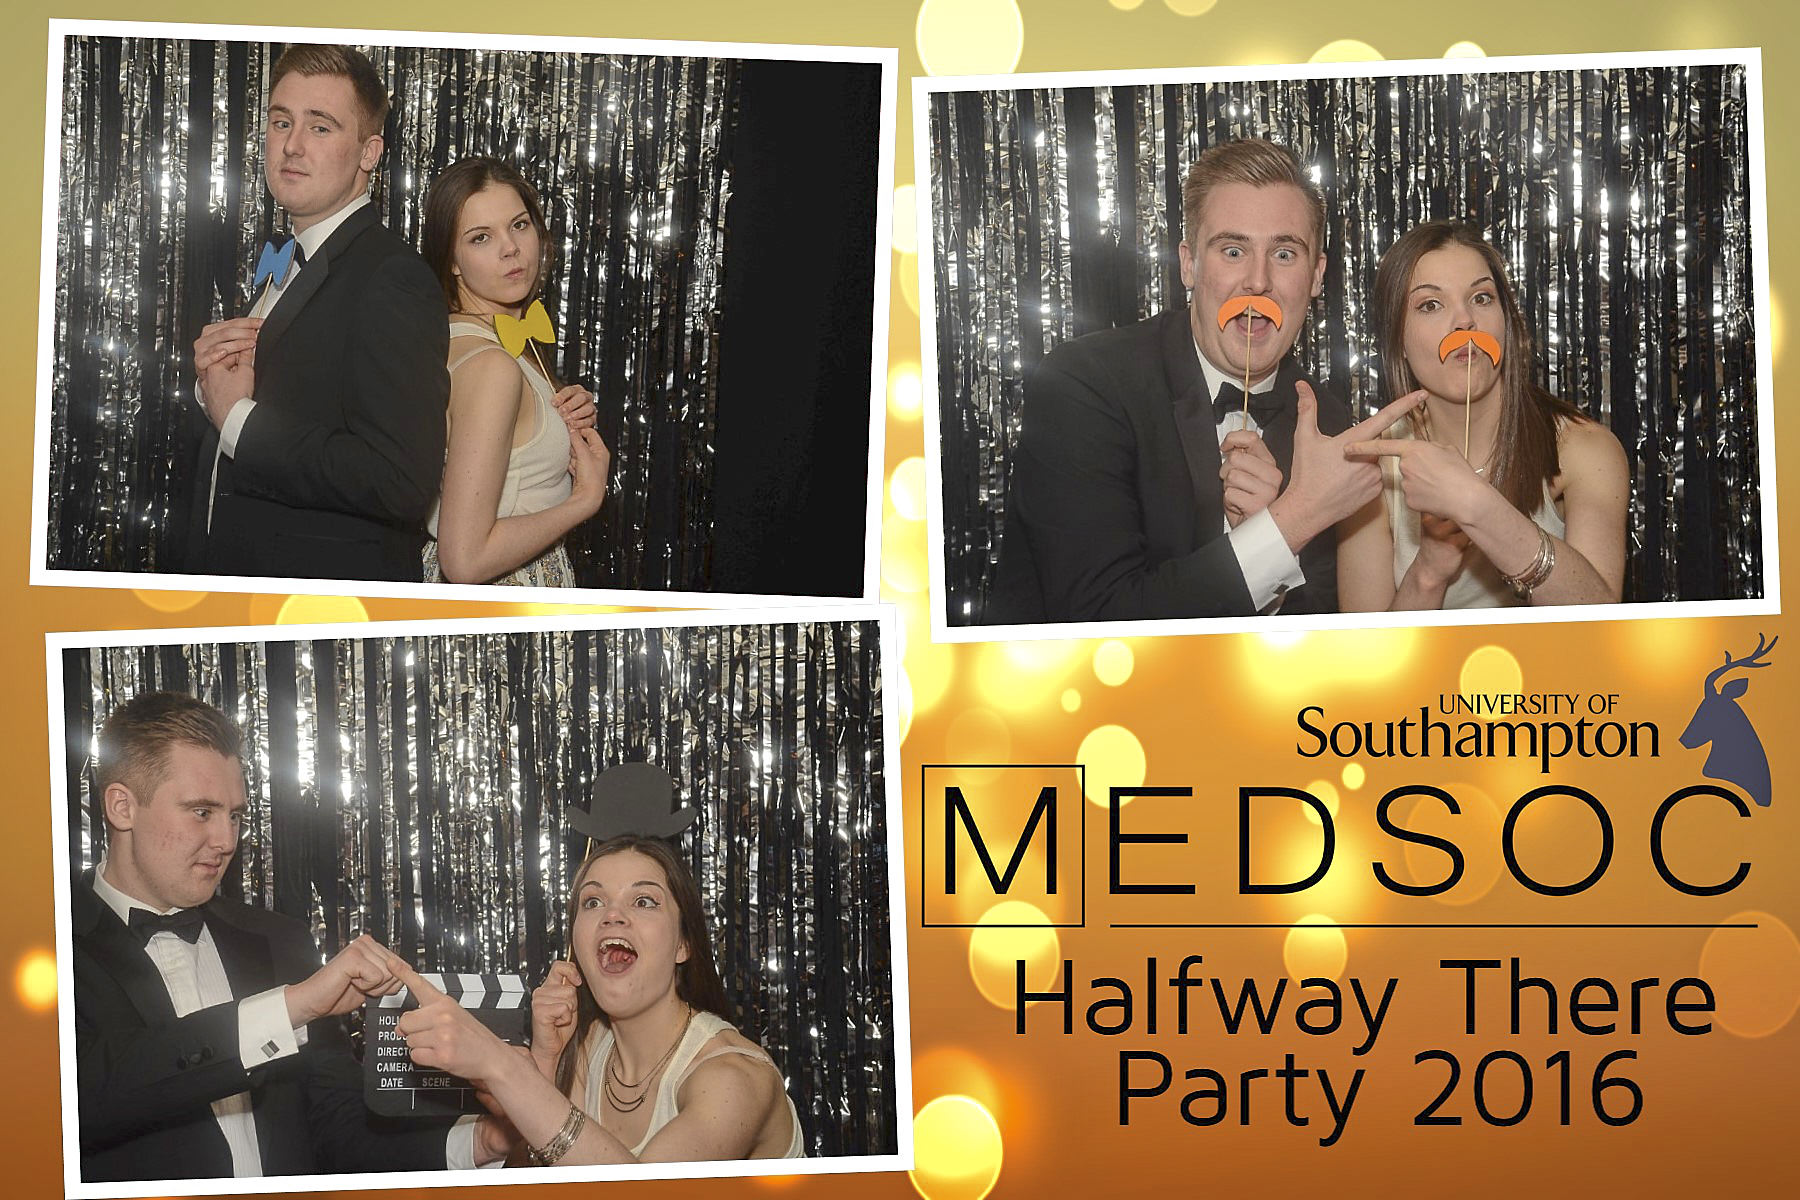 MedSoc Halfway There Party 2016 DS004021.jpg